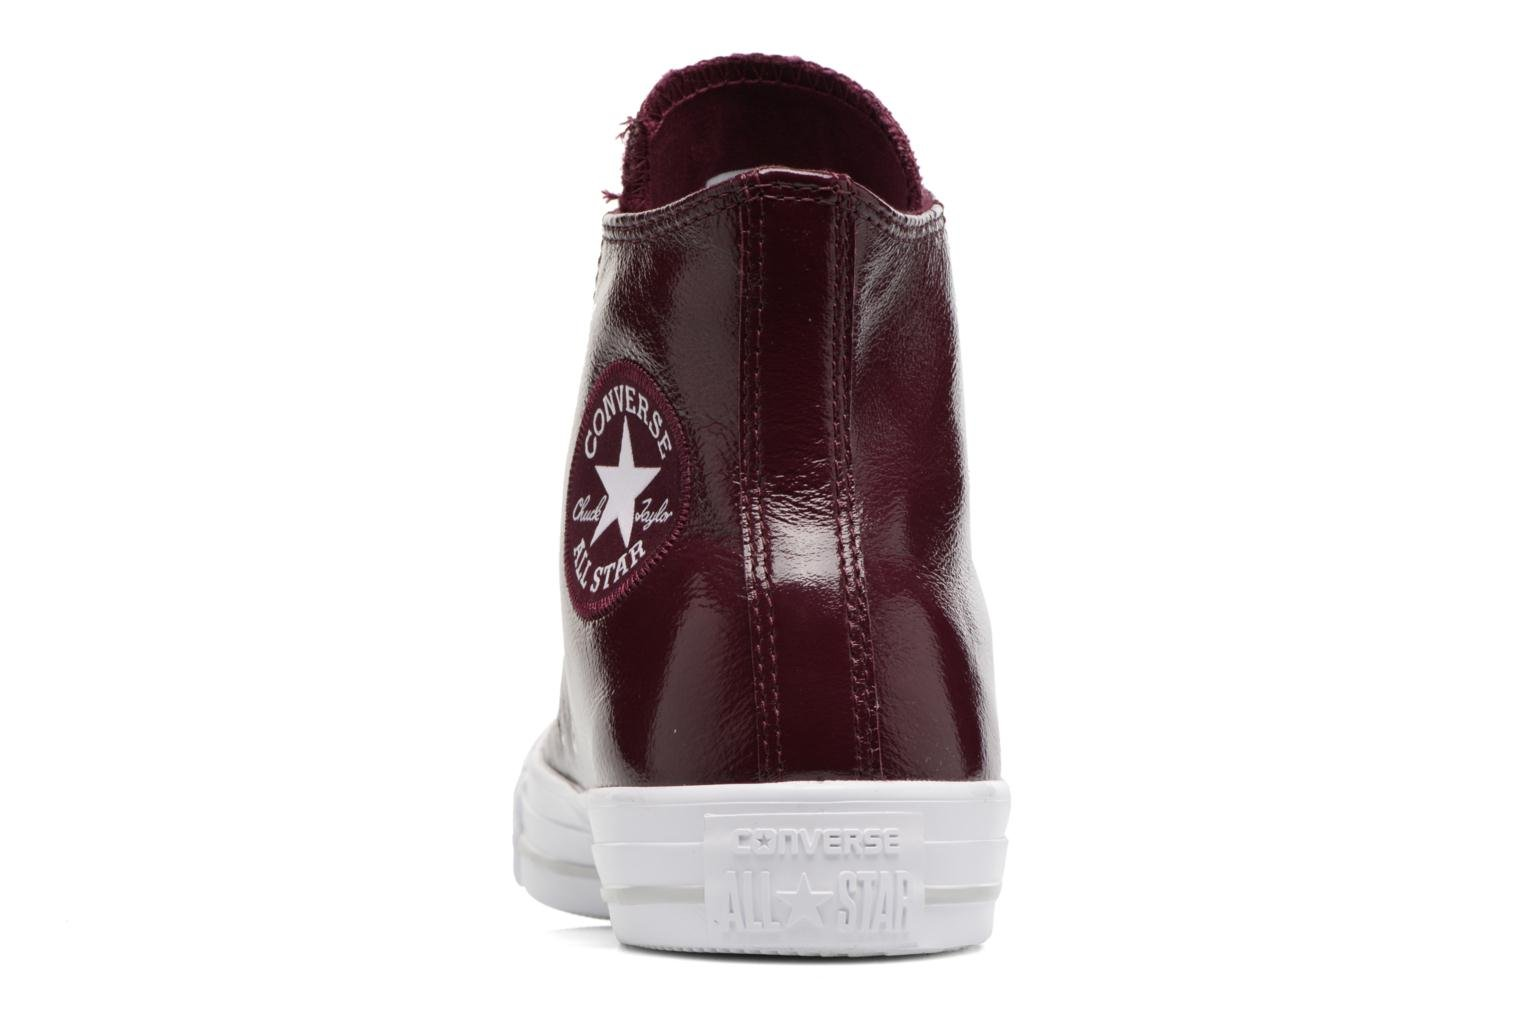 Chuck Taylor All Star Crinkled Patent Leather Hi Dark Sangria/Dark Sangria/White